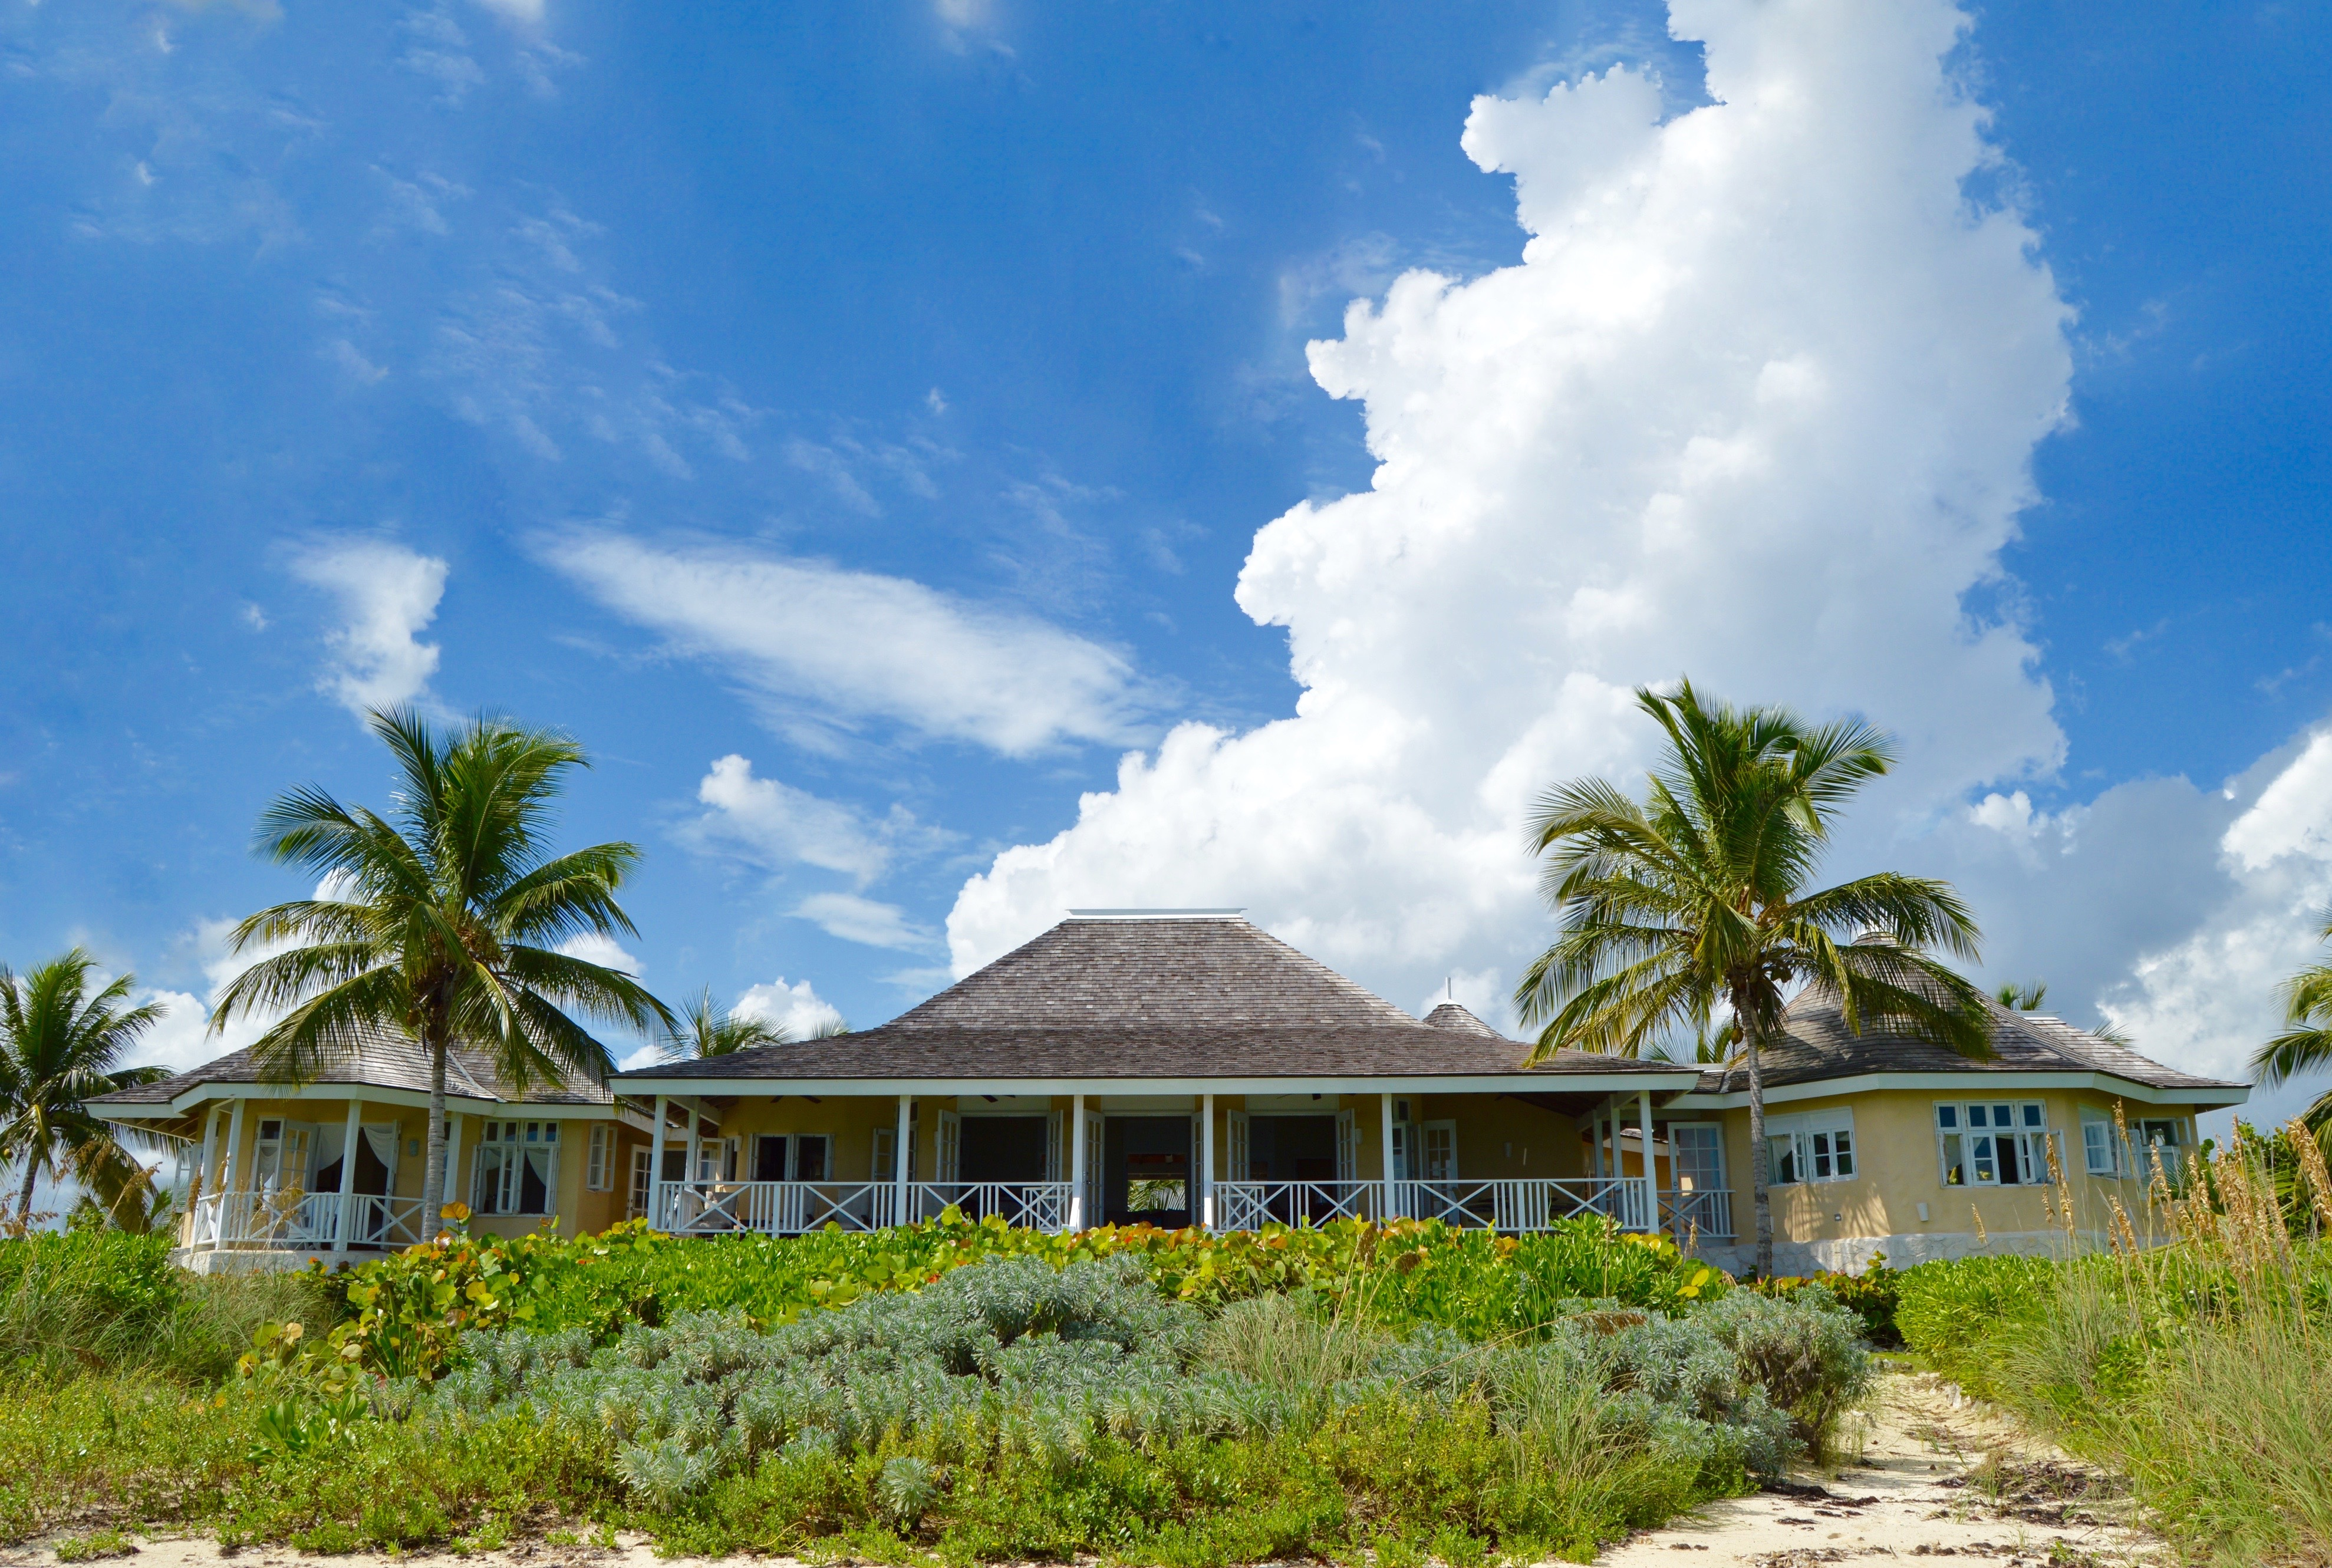 Property For Sale at Coop's Nest, Kamalame Cay